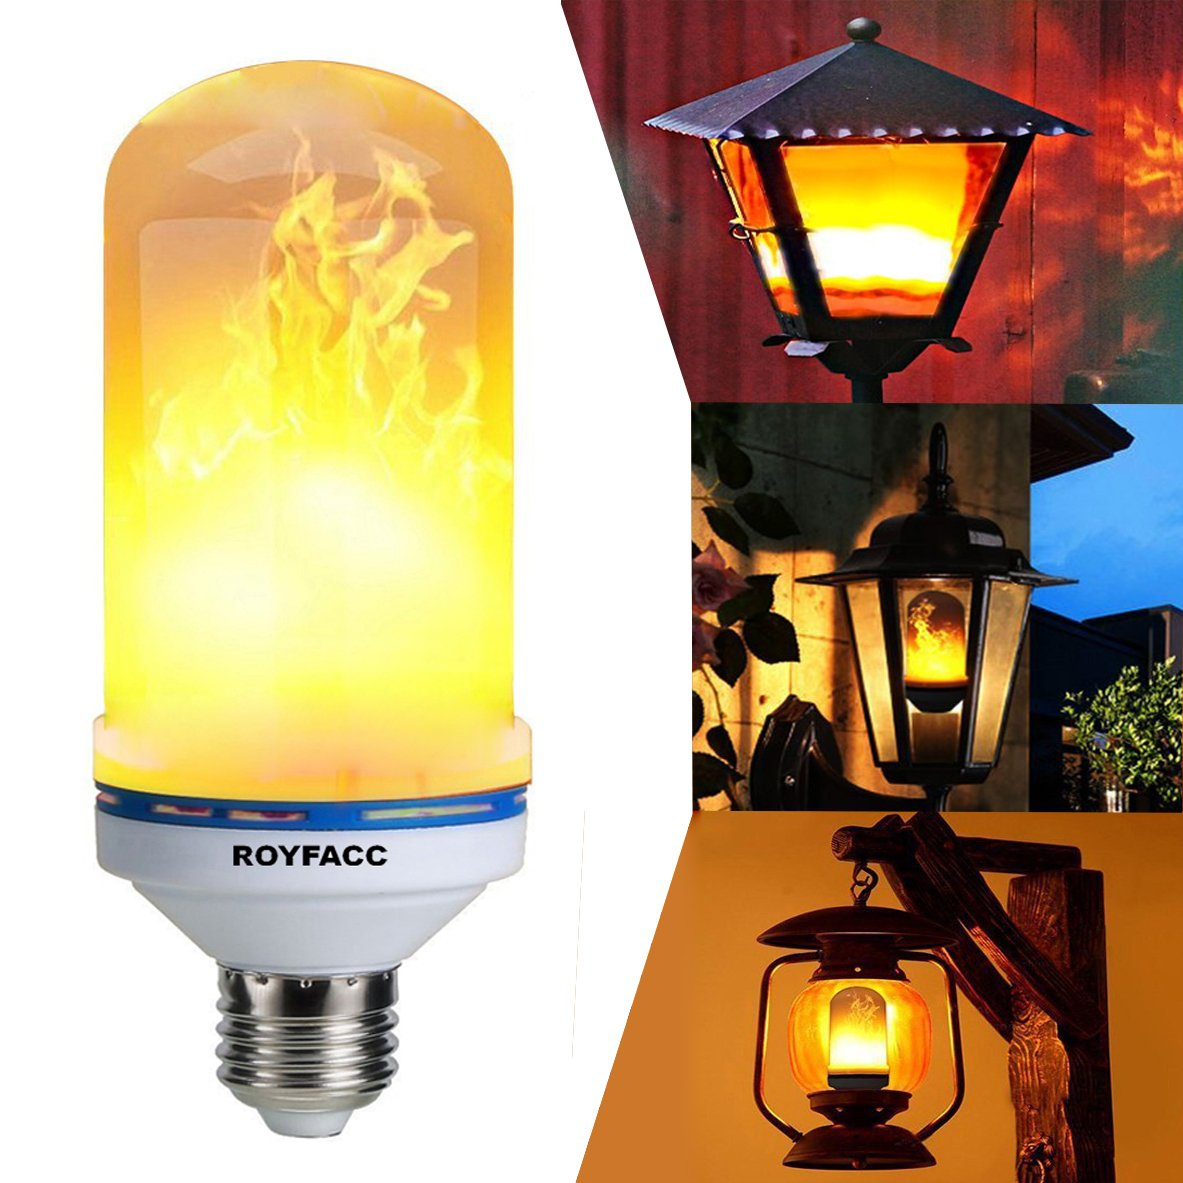 ROYFACC LED Light Bulb, E26 Base Flame Effect Light Bulbs, Flickering Vintage Torch Light Mood Lamp for Table Lamp with 3 Modes Home Garden Party Pathway Decor